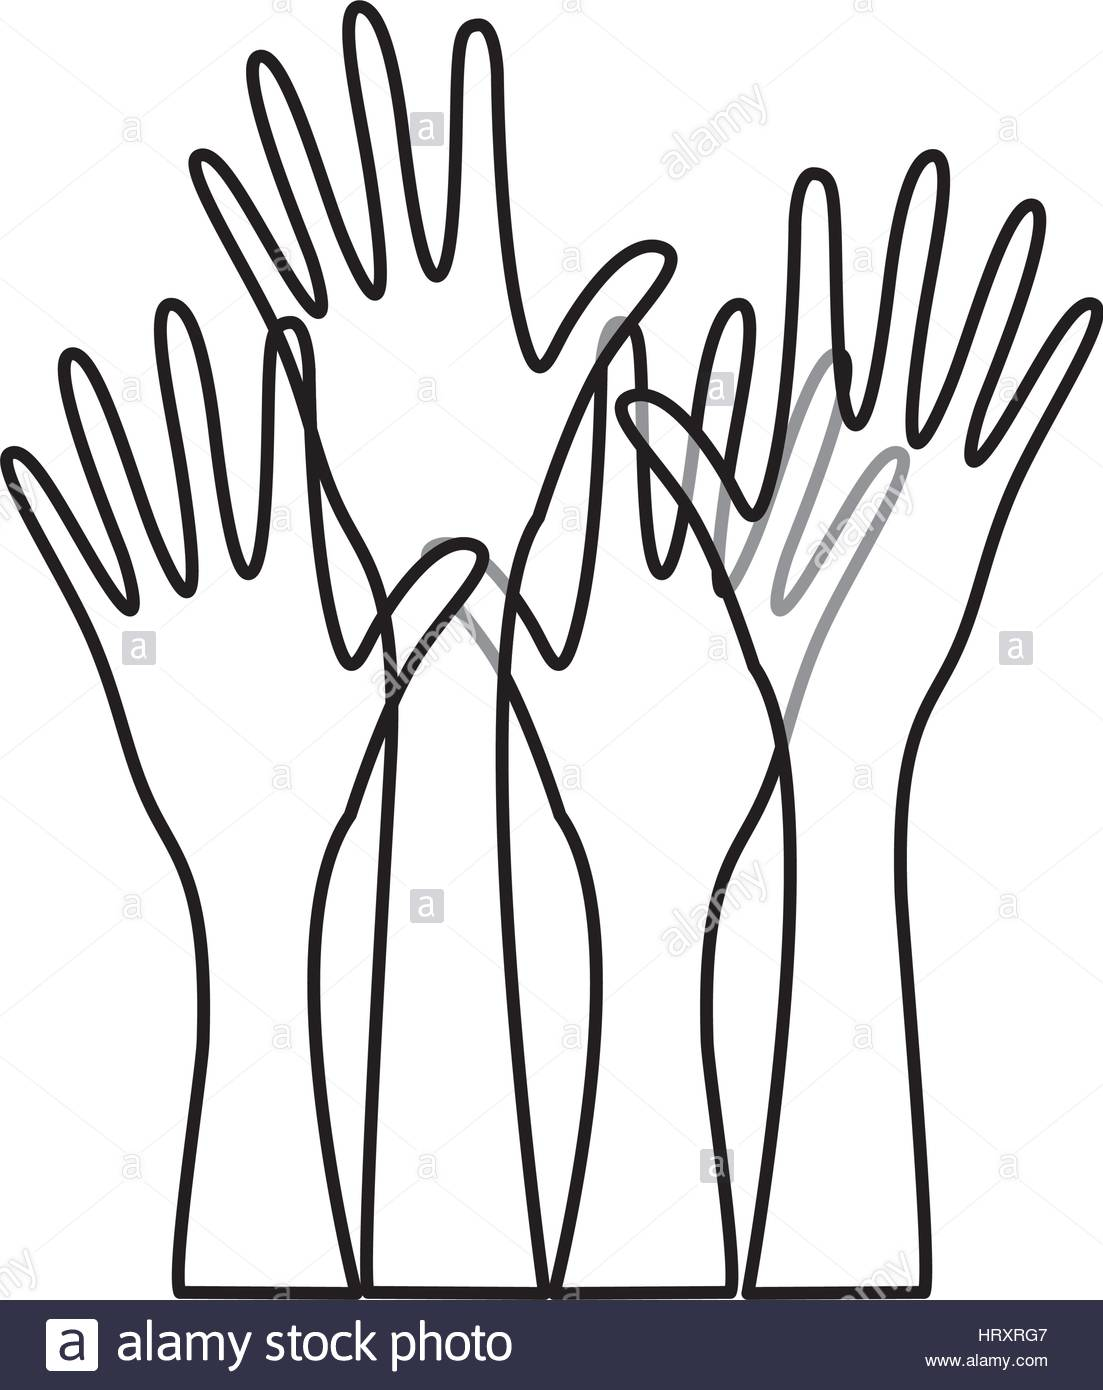 1103x1390 Hands Raised Stock Vector Images